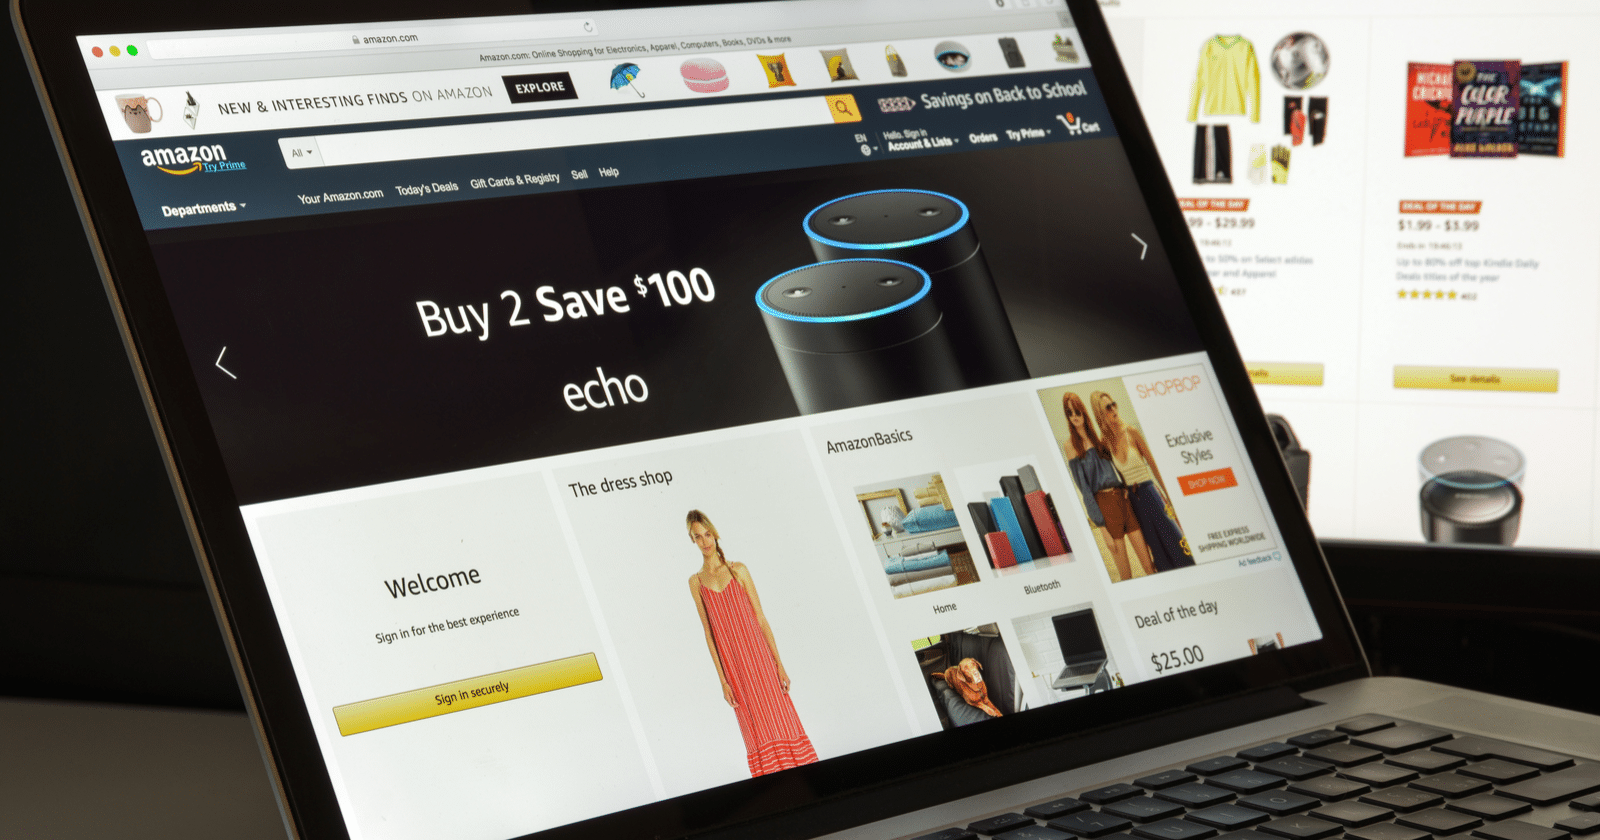 Amazon — Props Up Its Products